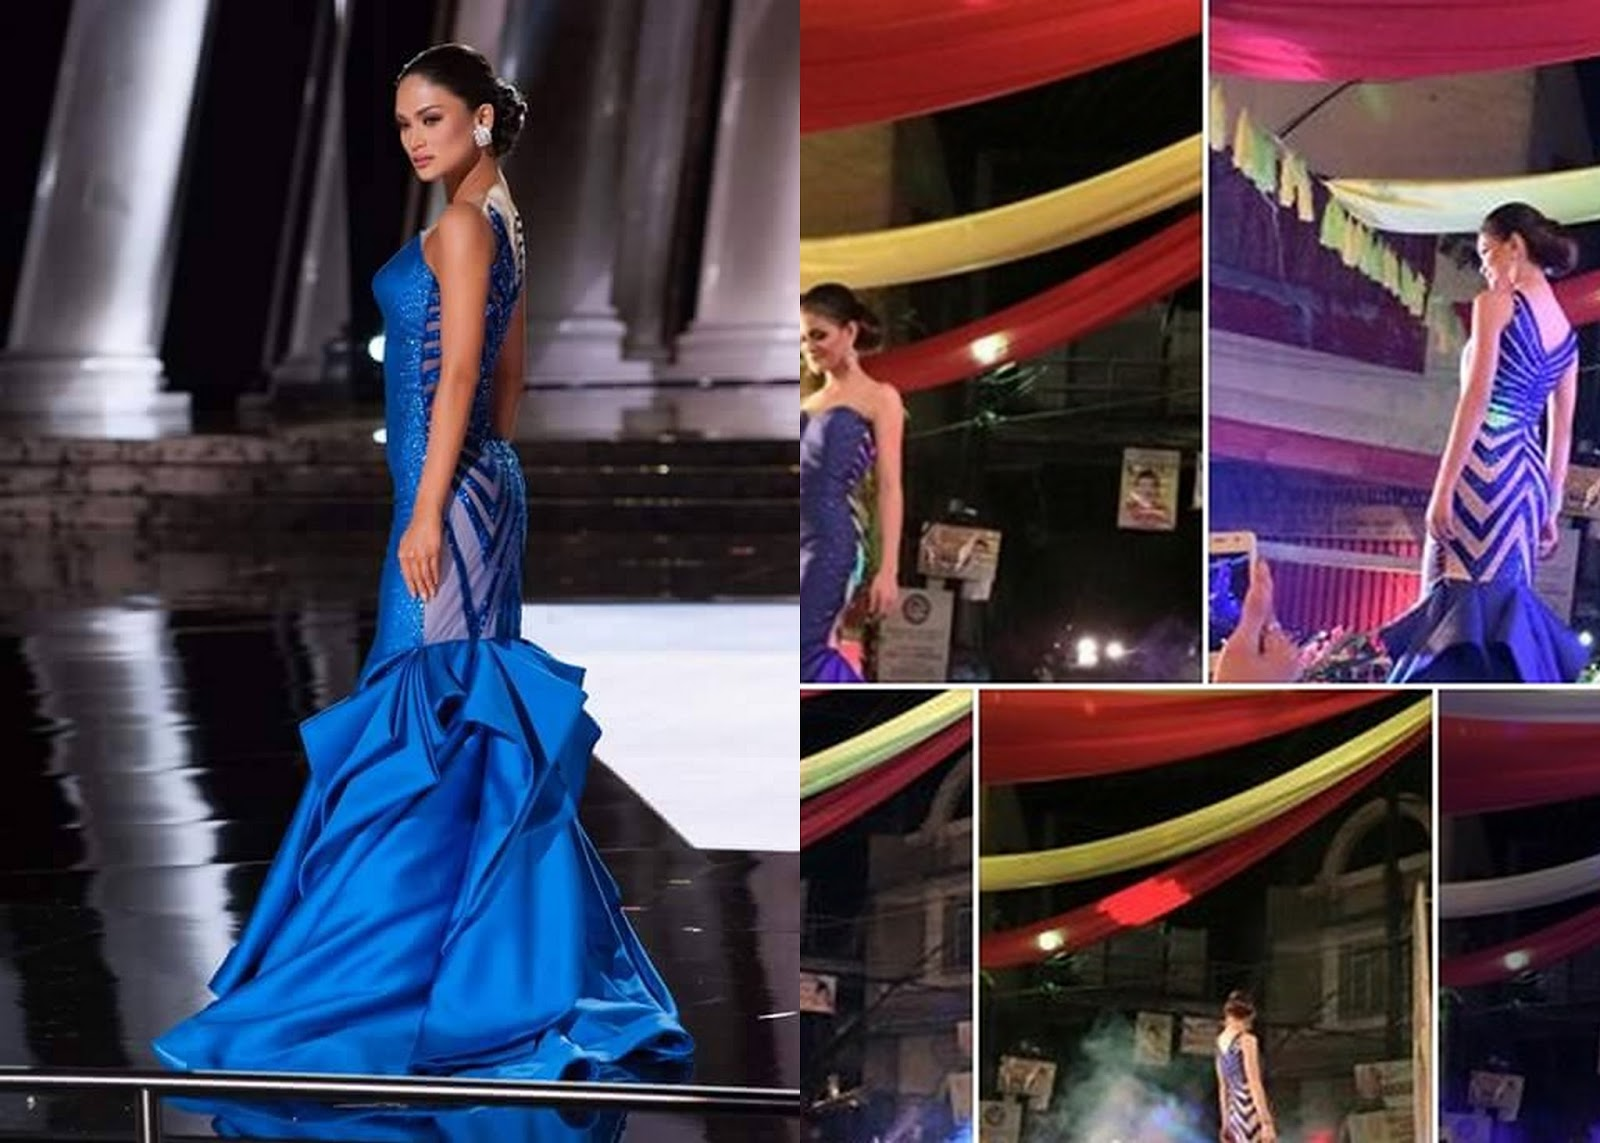 The replica blue gown of Miss Universe 2015 Pia Wurtzbach is